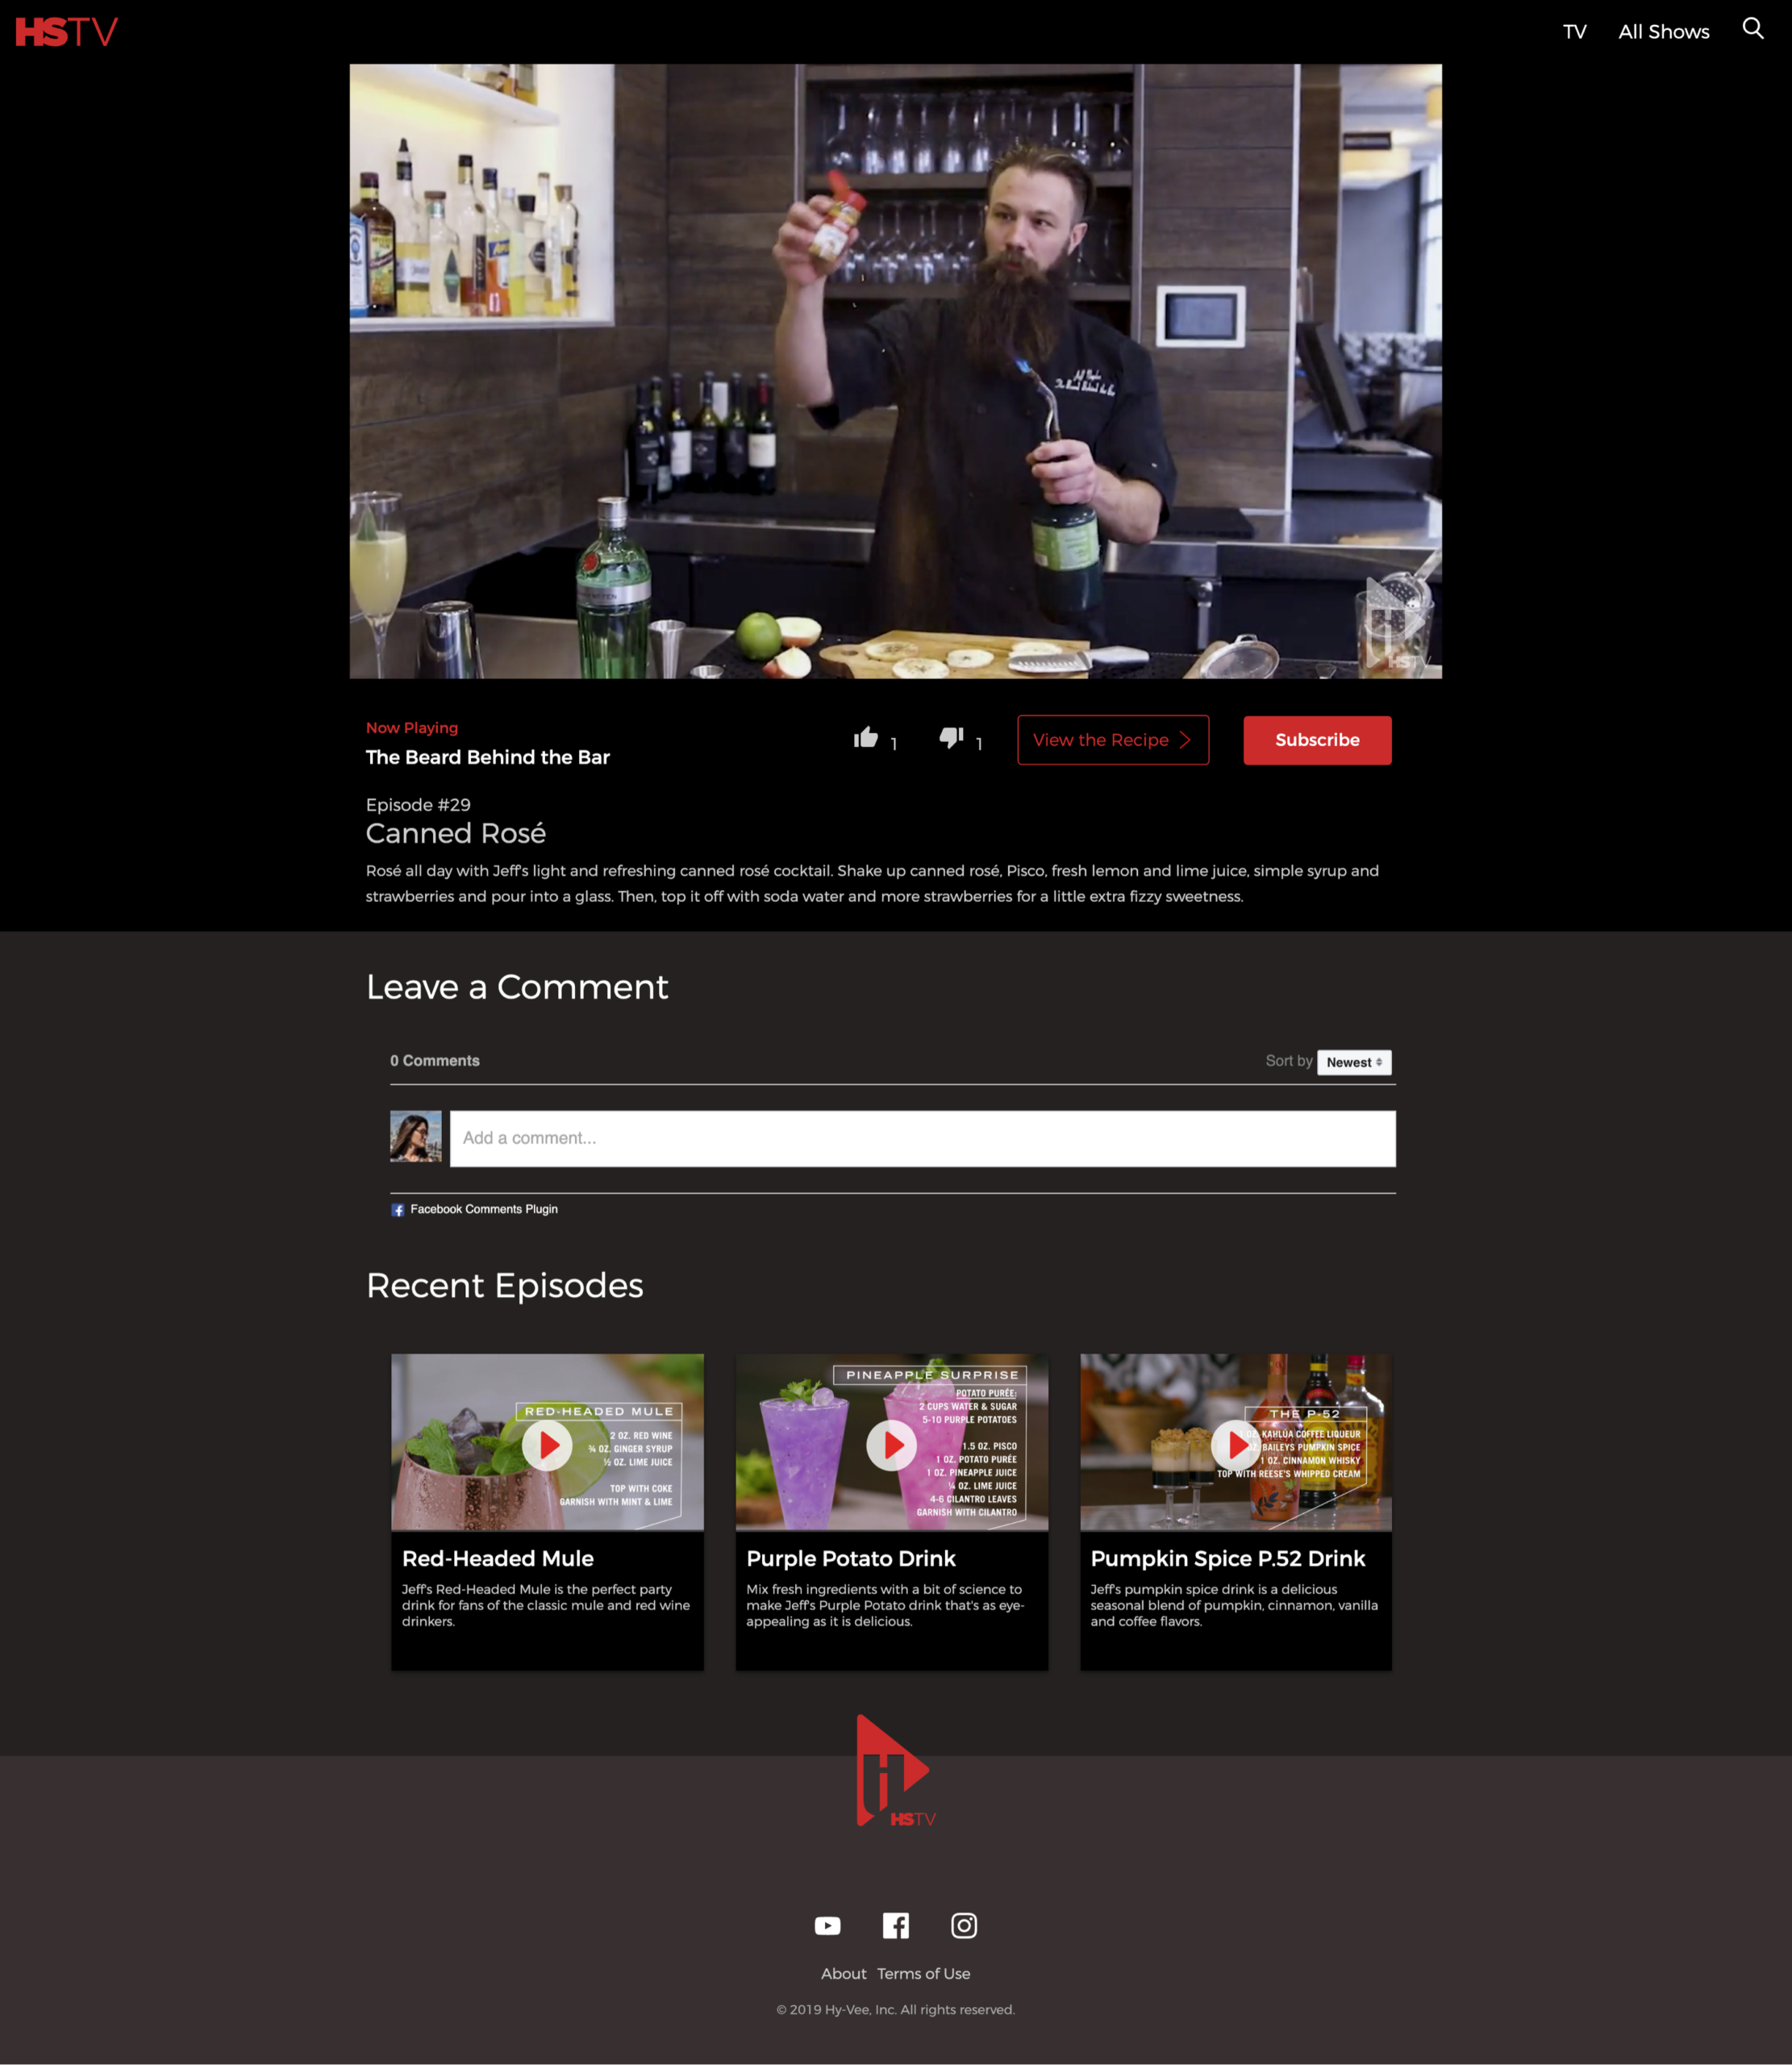 screencapture-hstv-show-the-beard-behind-the-bar-episode-canned-rose-2019-11-28-18_51_37